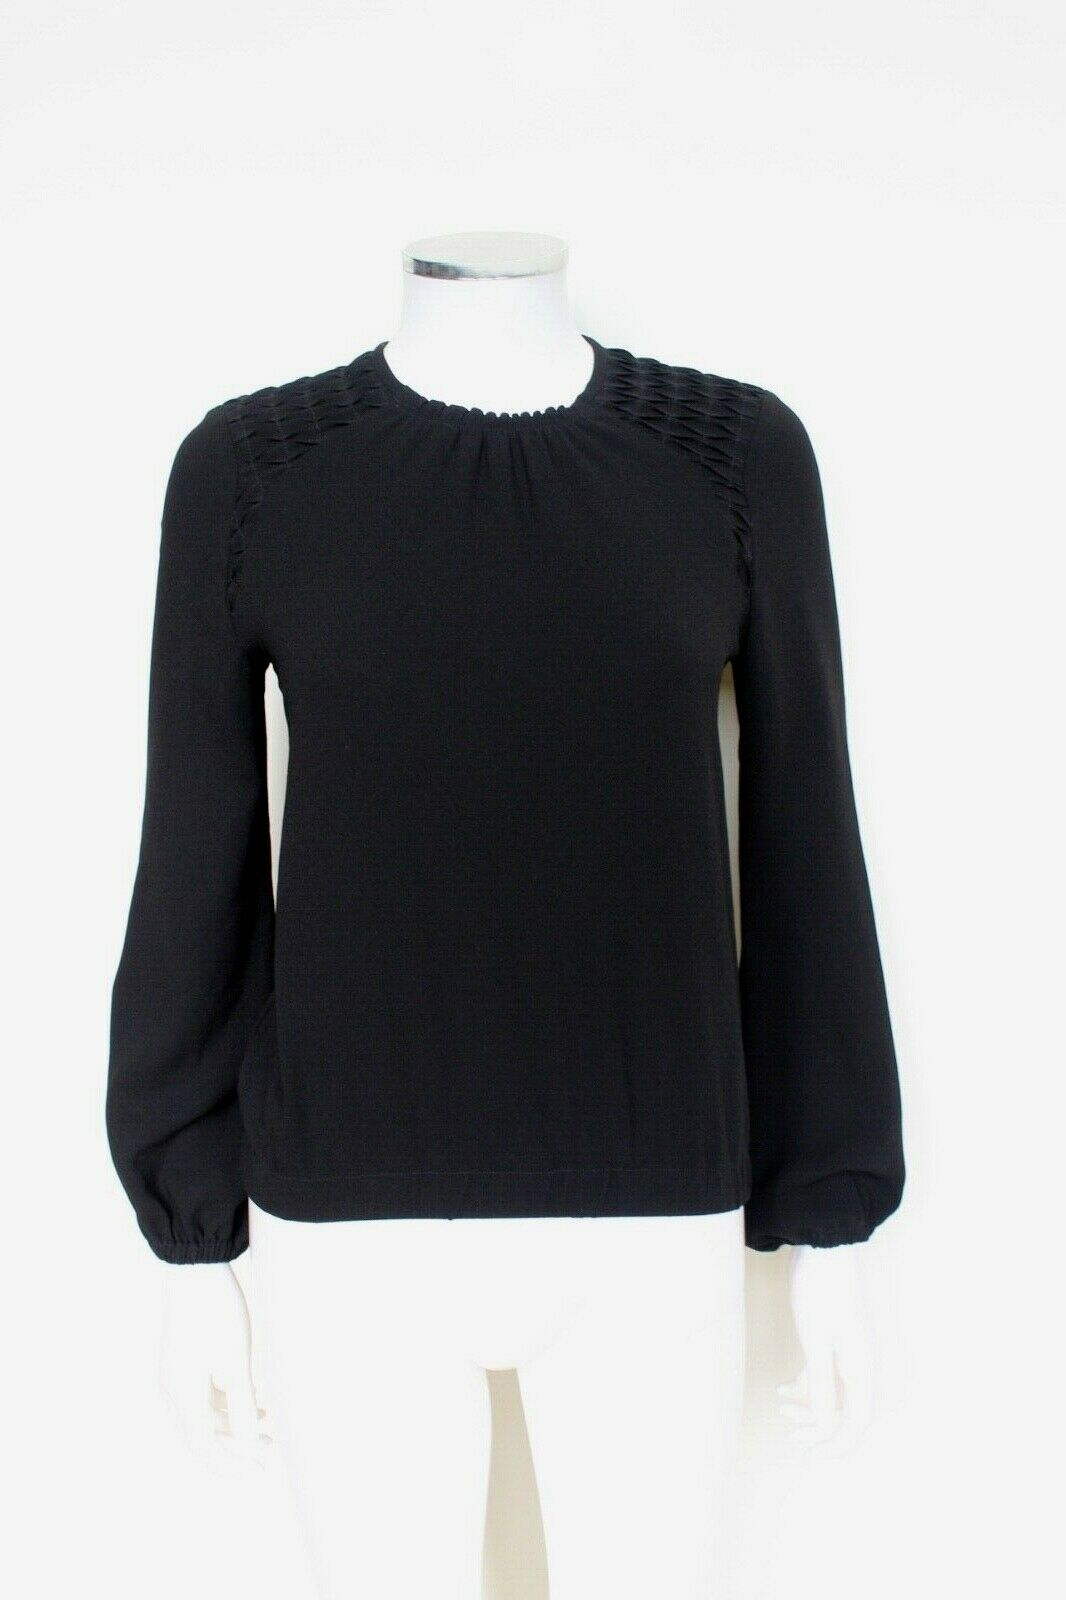 Isabel Marant schwarz Long Sleeve Blouse Top 36